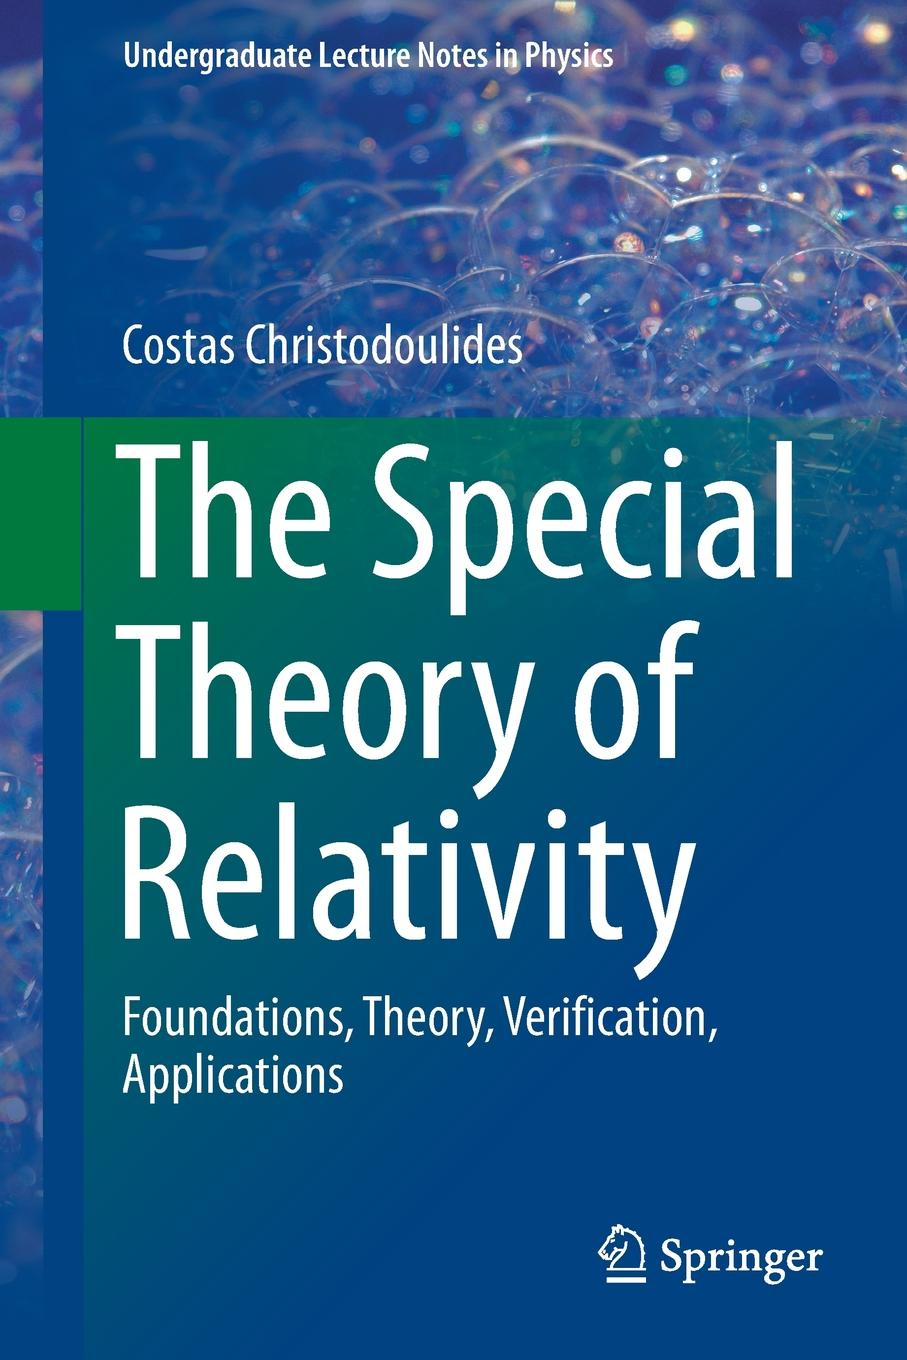 Costas Christodoulides The Special Theory of Relativity. Foundations, Theory, Verification, Applications angela henderson c family theories foundations and applications